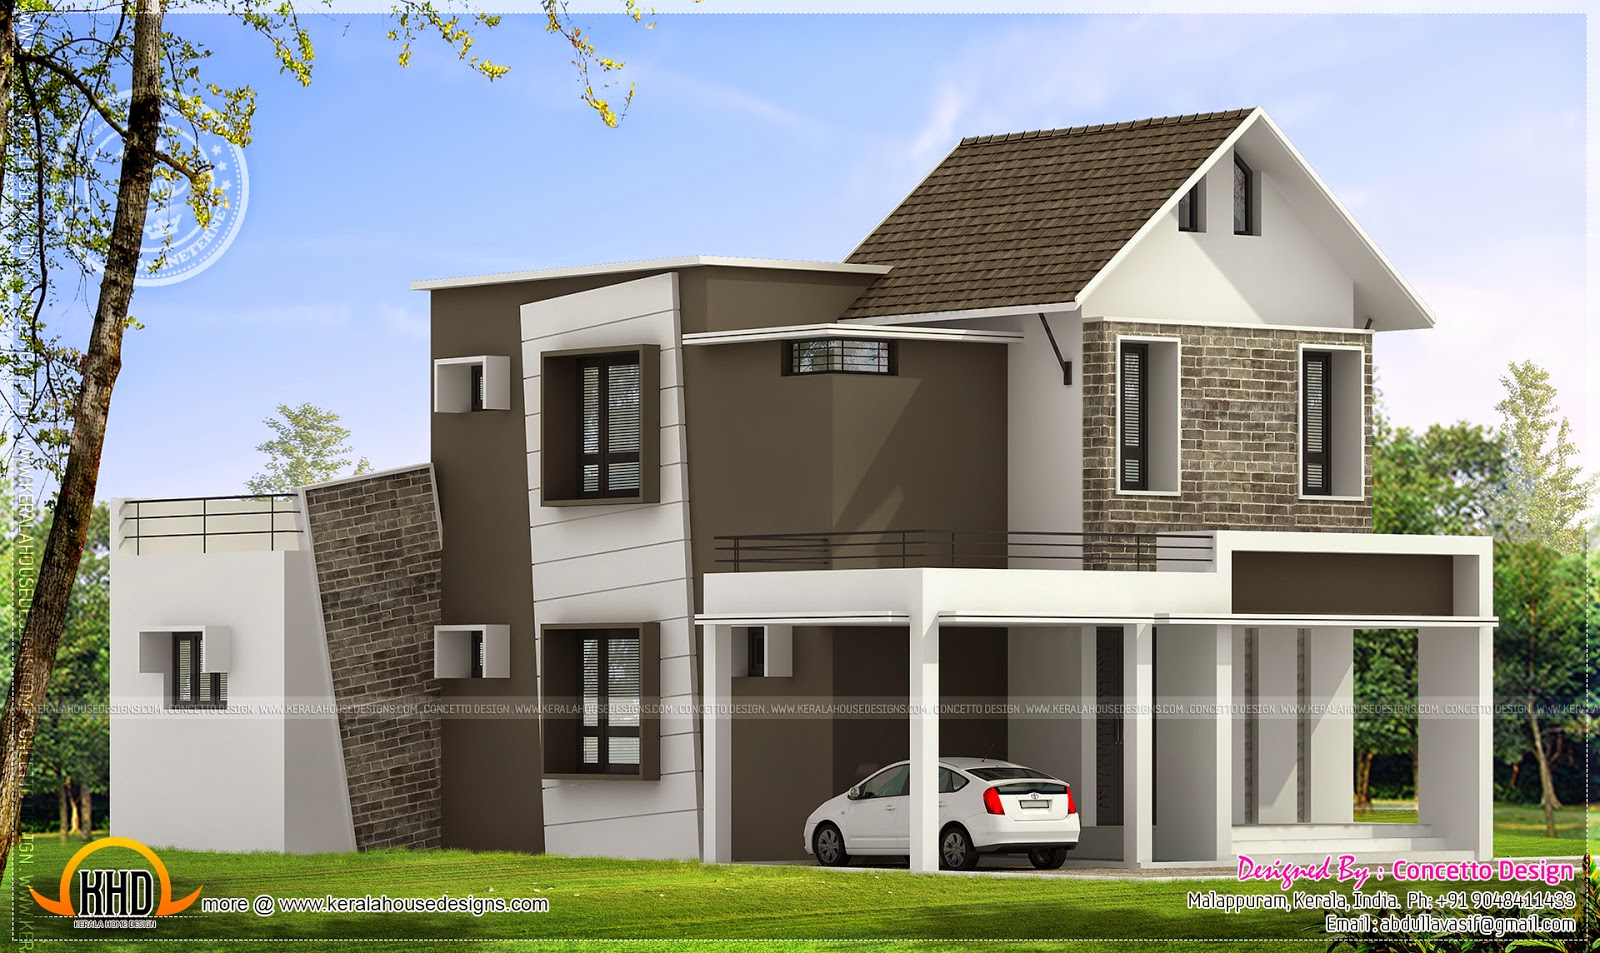 260 square yard house exterior kerala home design and for Square house design